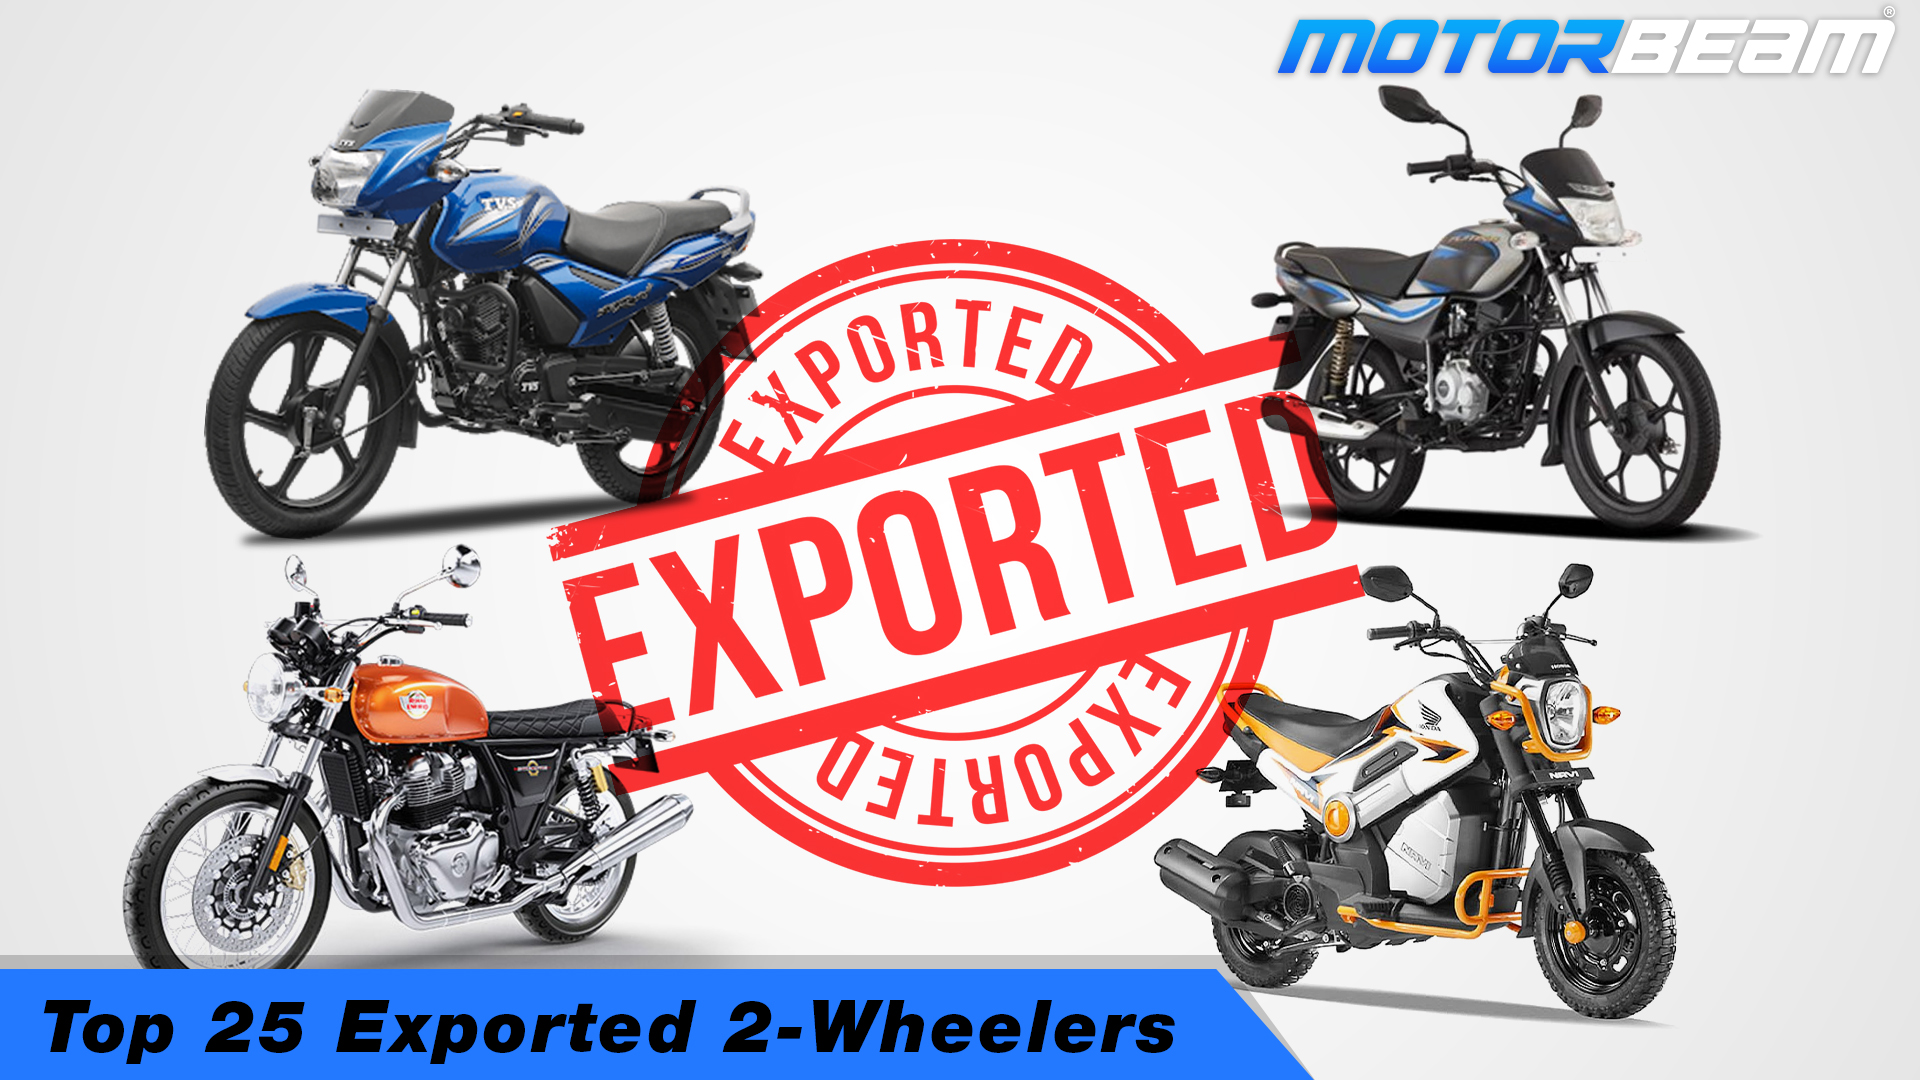 Top 25 Exported 2-Wheelers